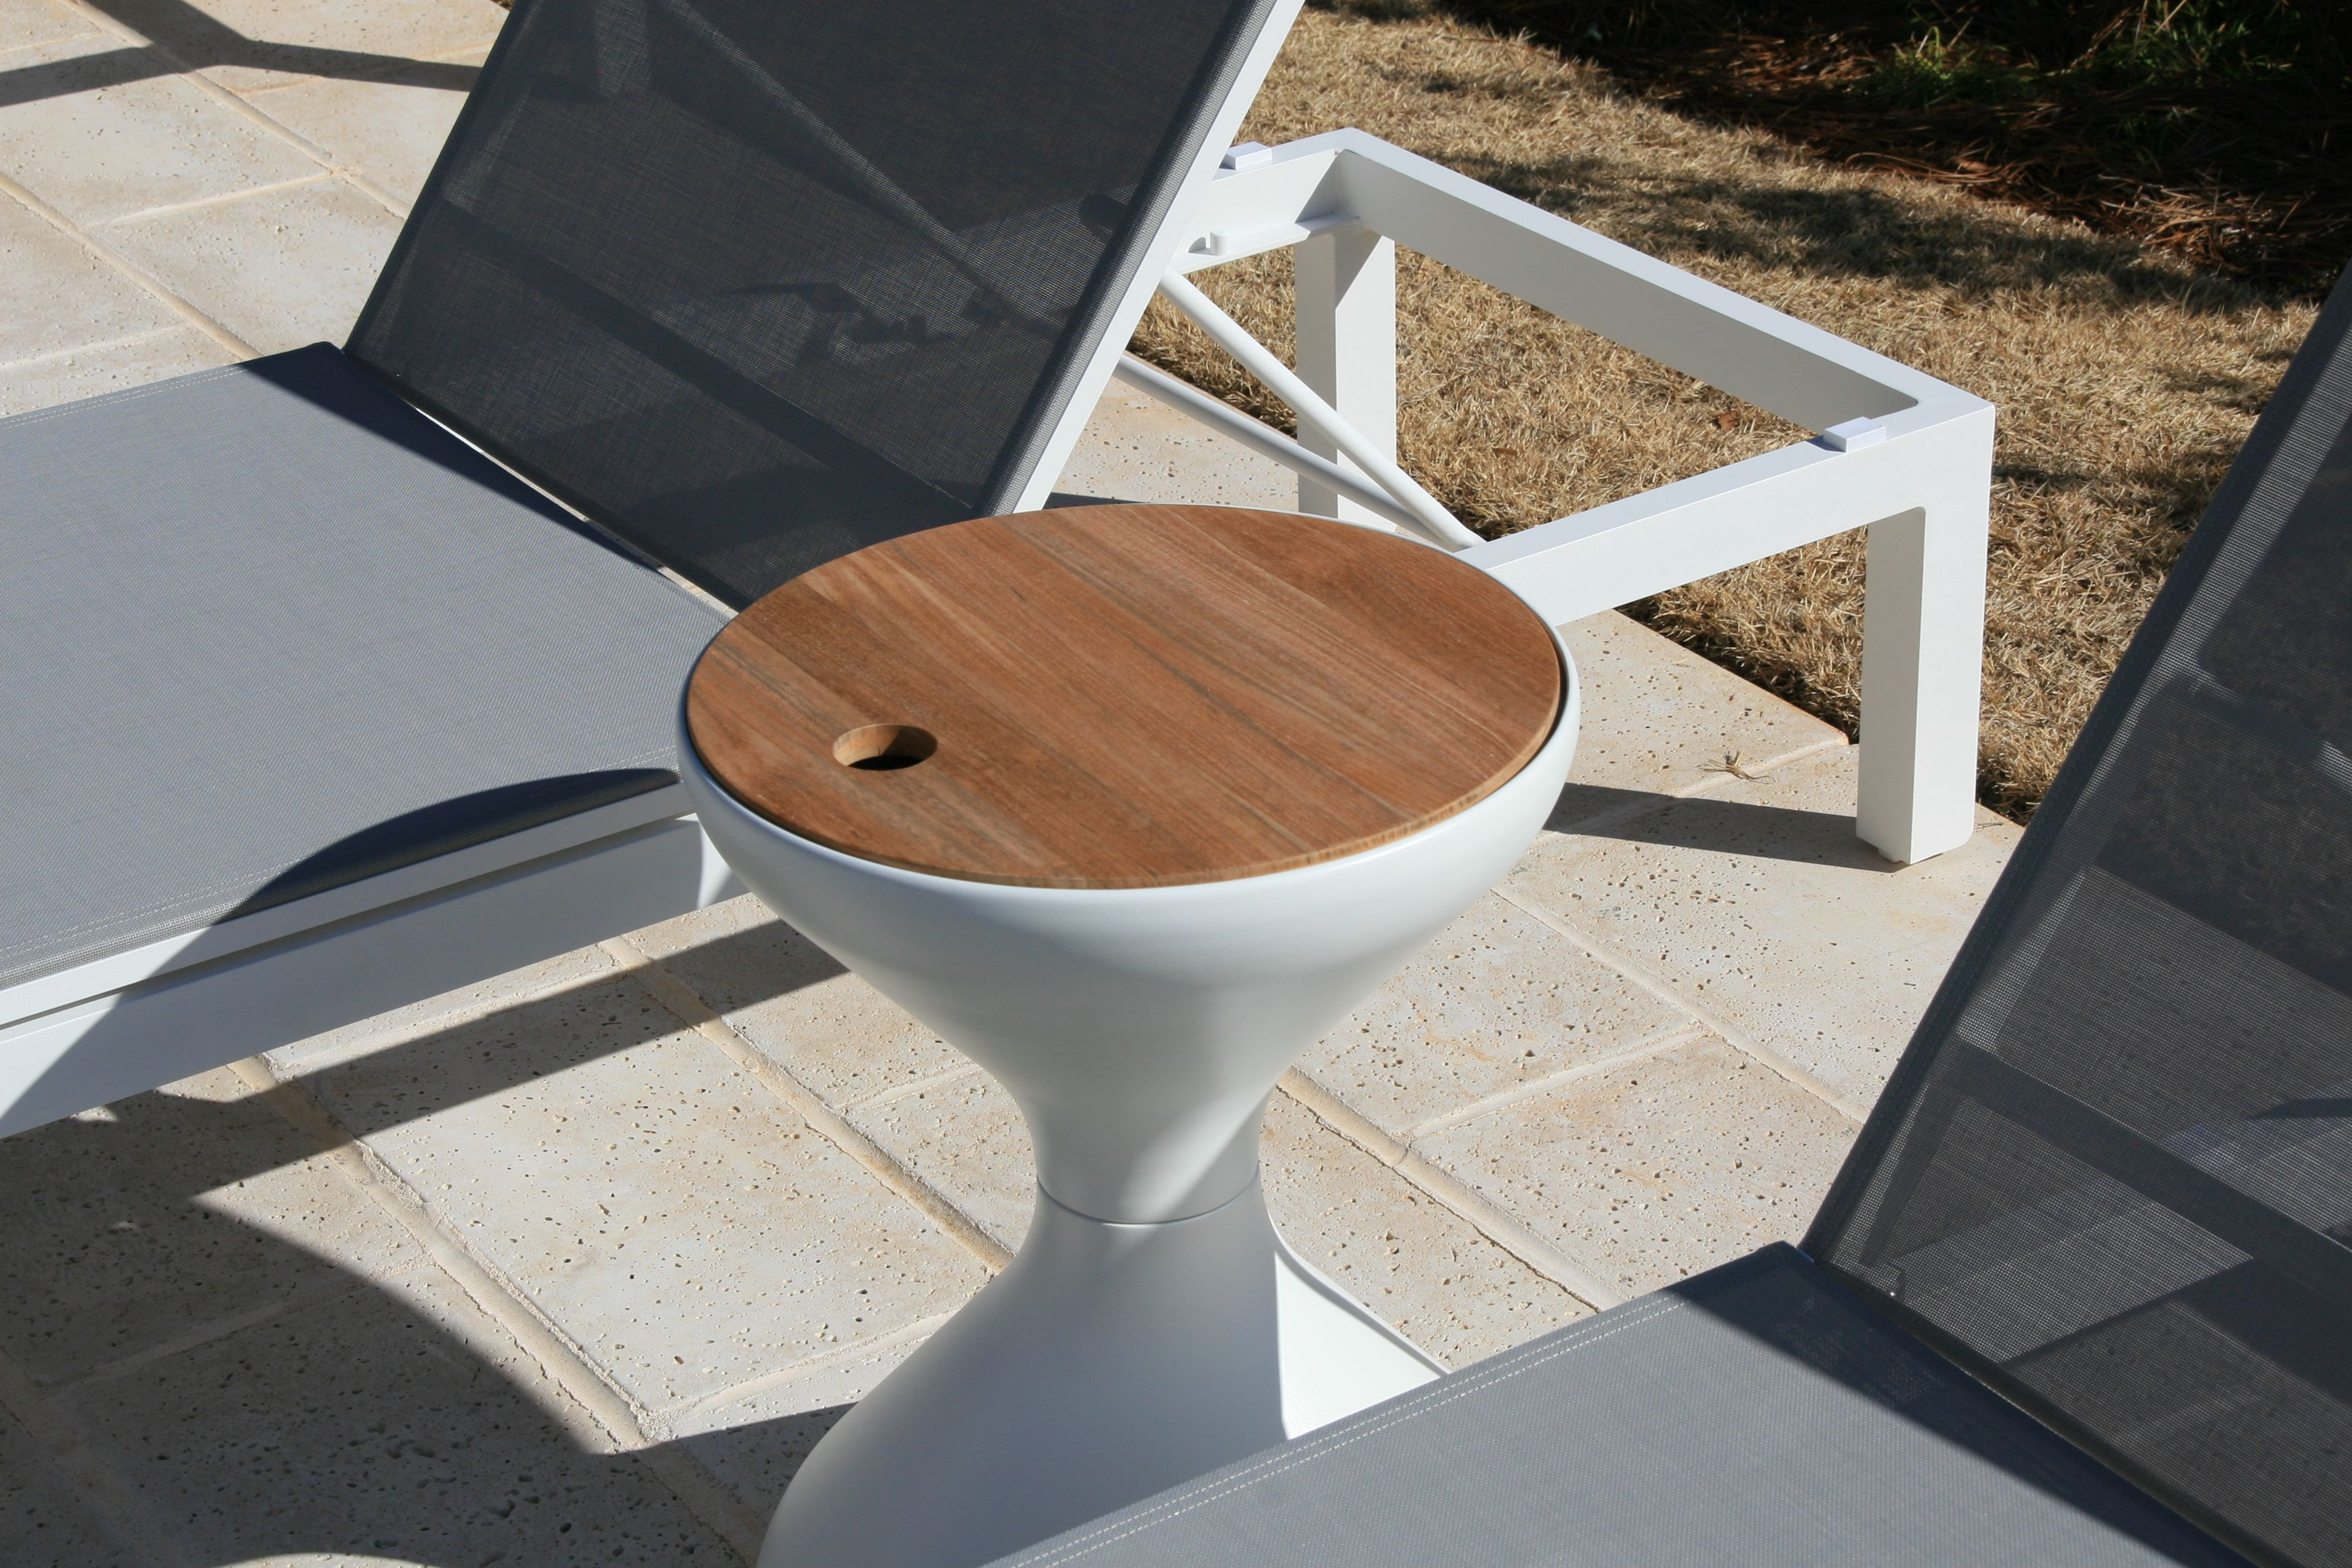 gloster bells side table with ice bucket insert outdoor furniture tables make statement their teak tops and hidden keep your drinks cool dining bench modern nest coffee nut milk